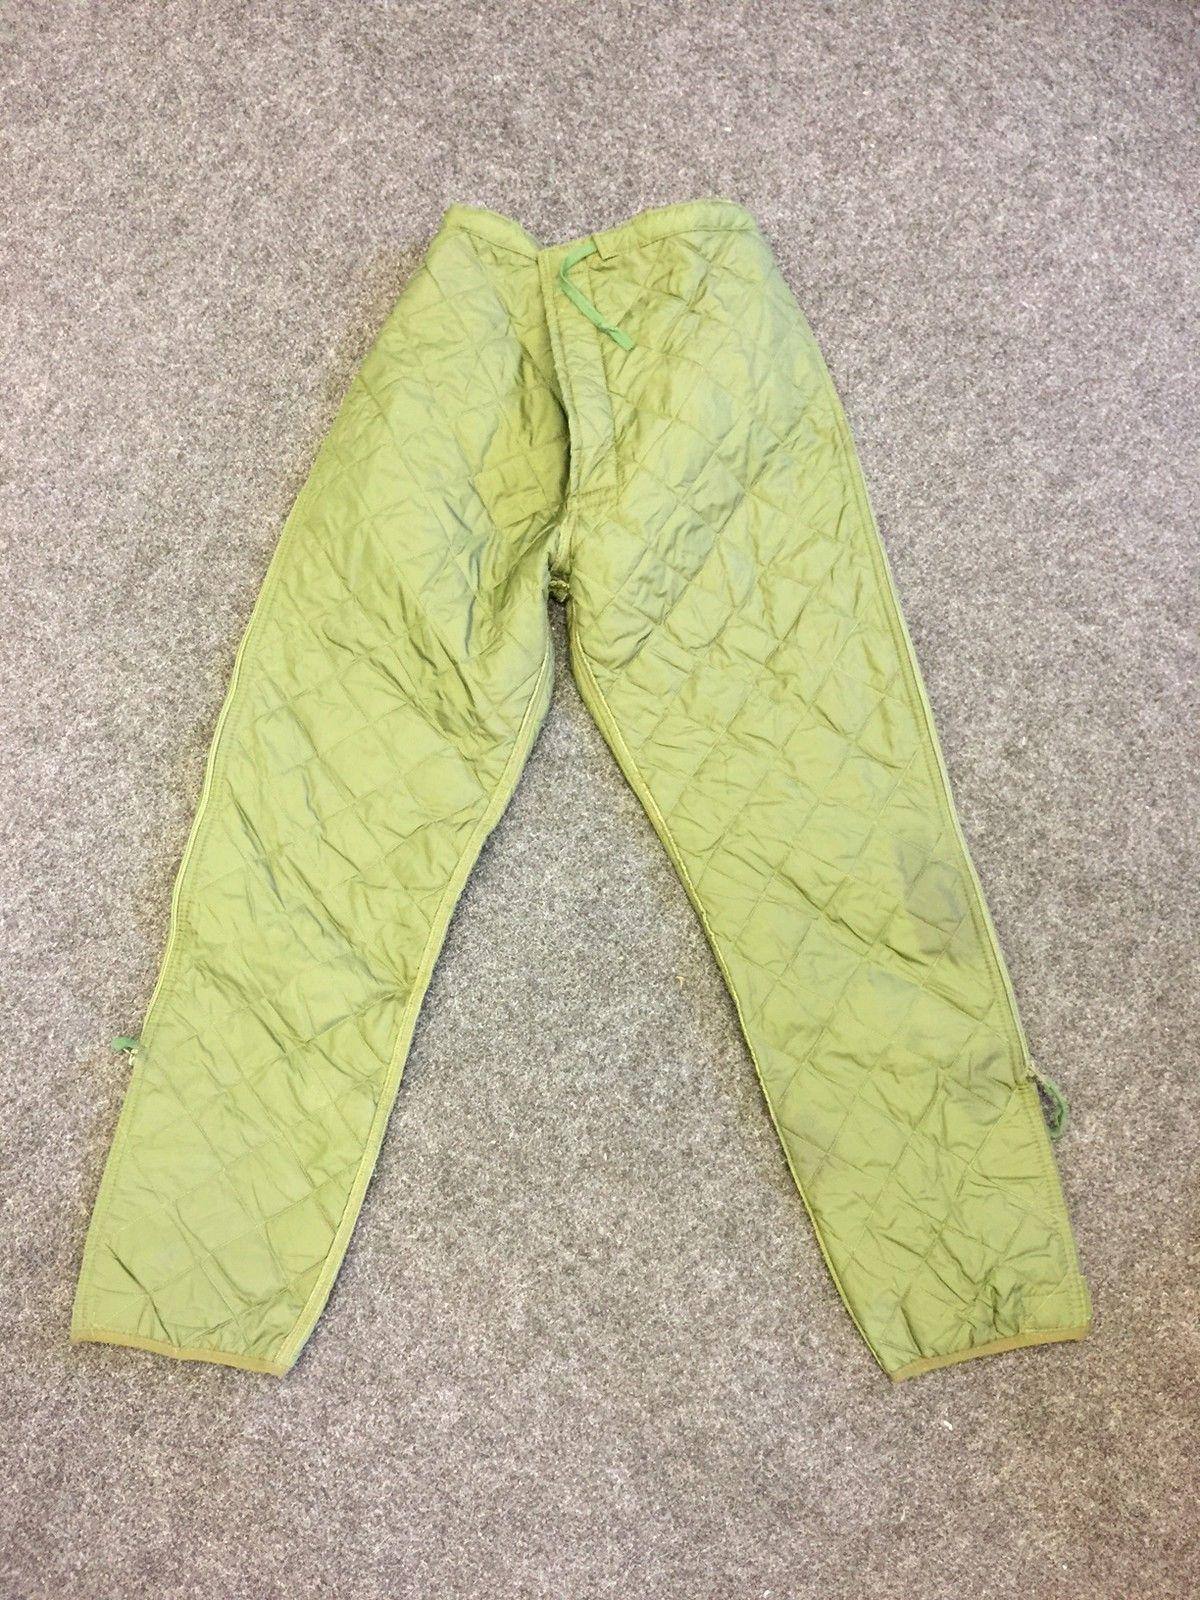 British army surplus extreme cold weather trousers liners